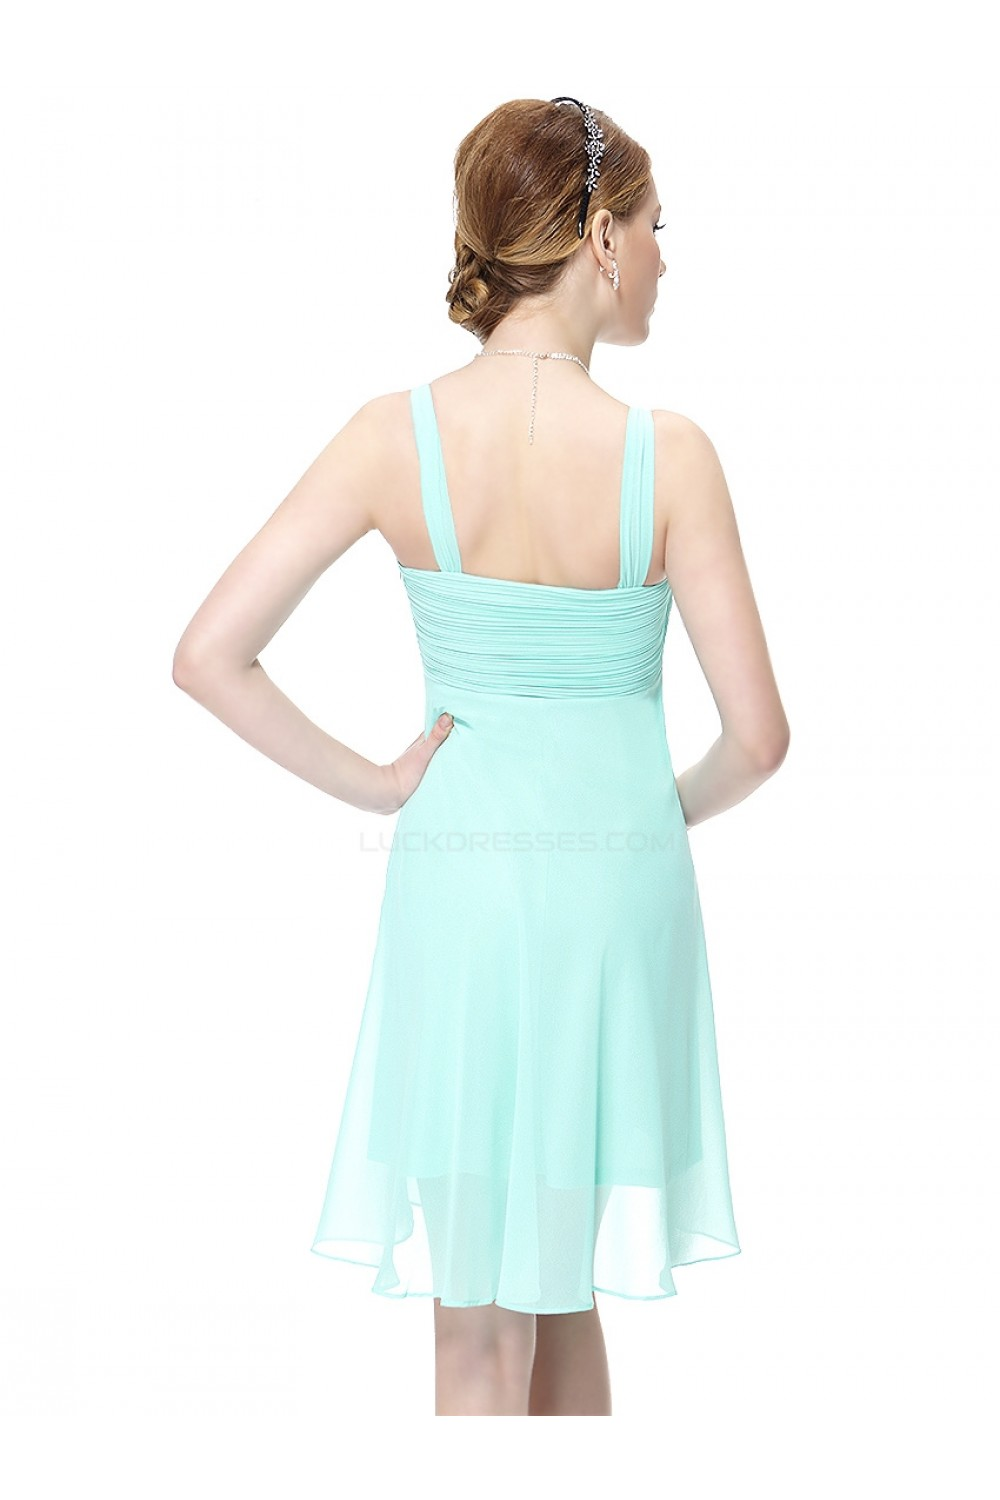 Short Blue Chiffon Bridesmaid Dresses/Wedding Party Dresses ...